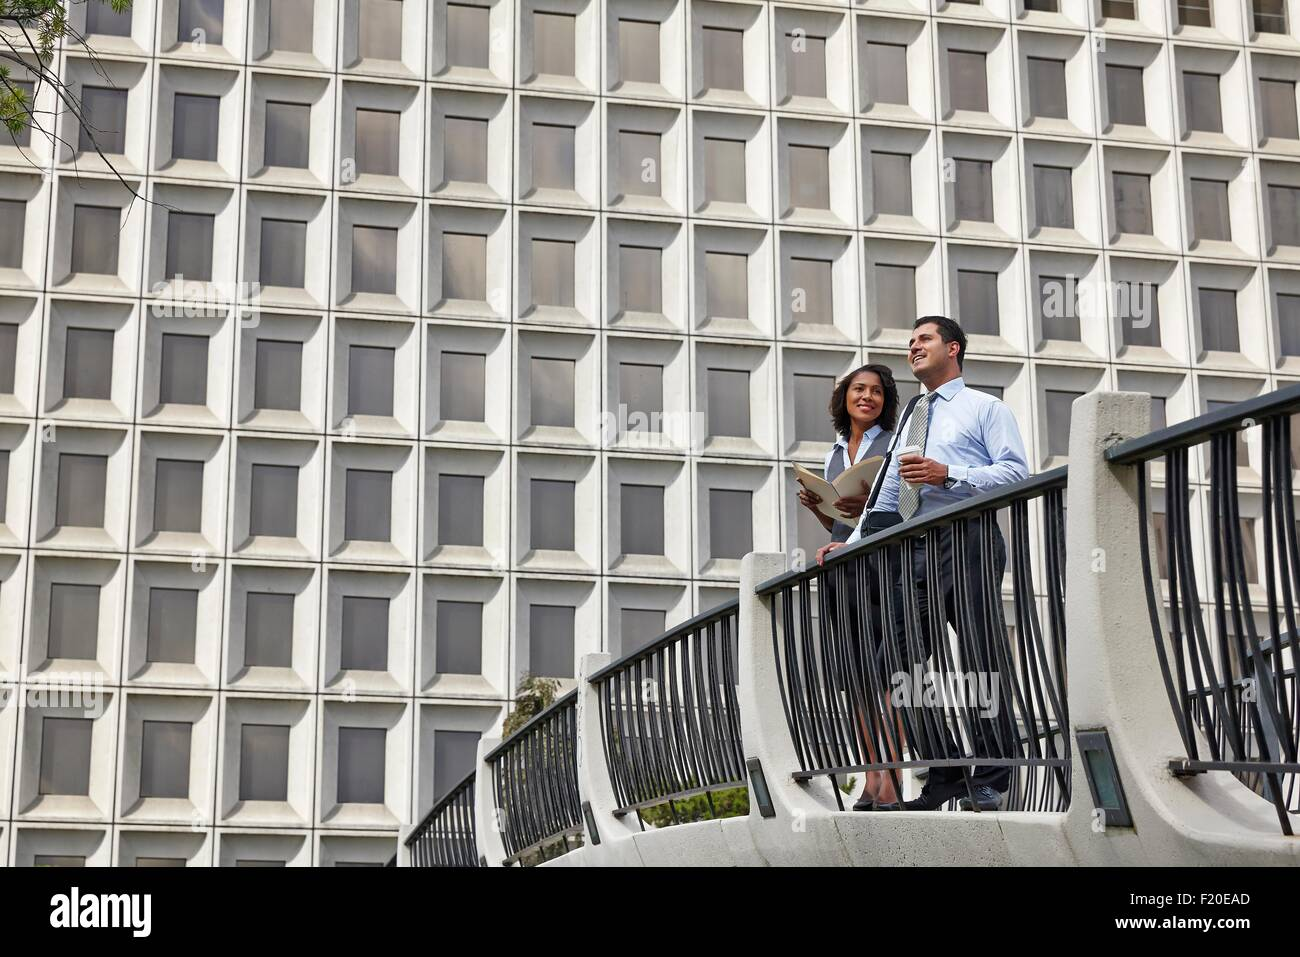 Business people standing behind railings in front of built structure - Stock Image